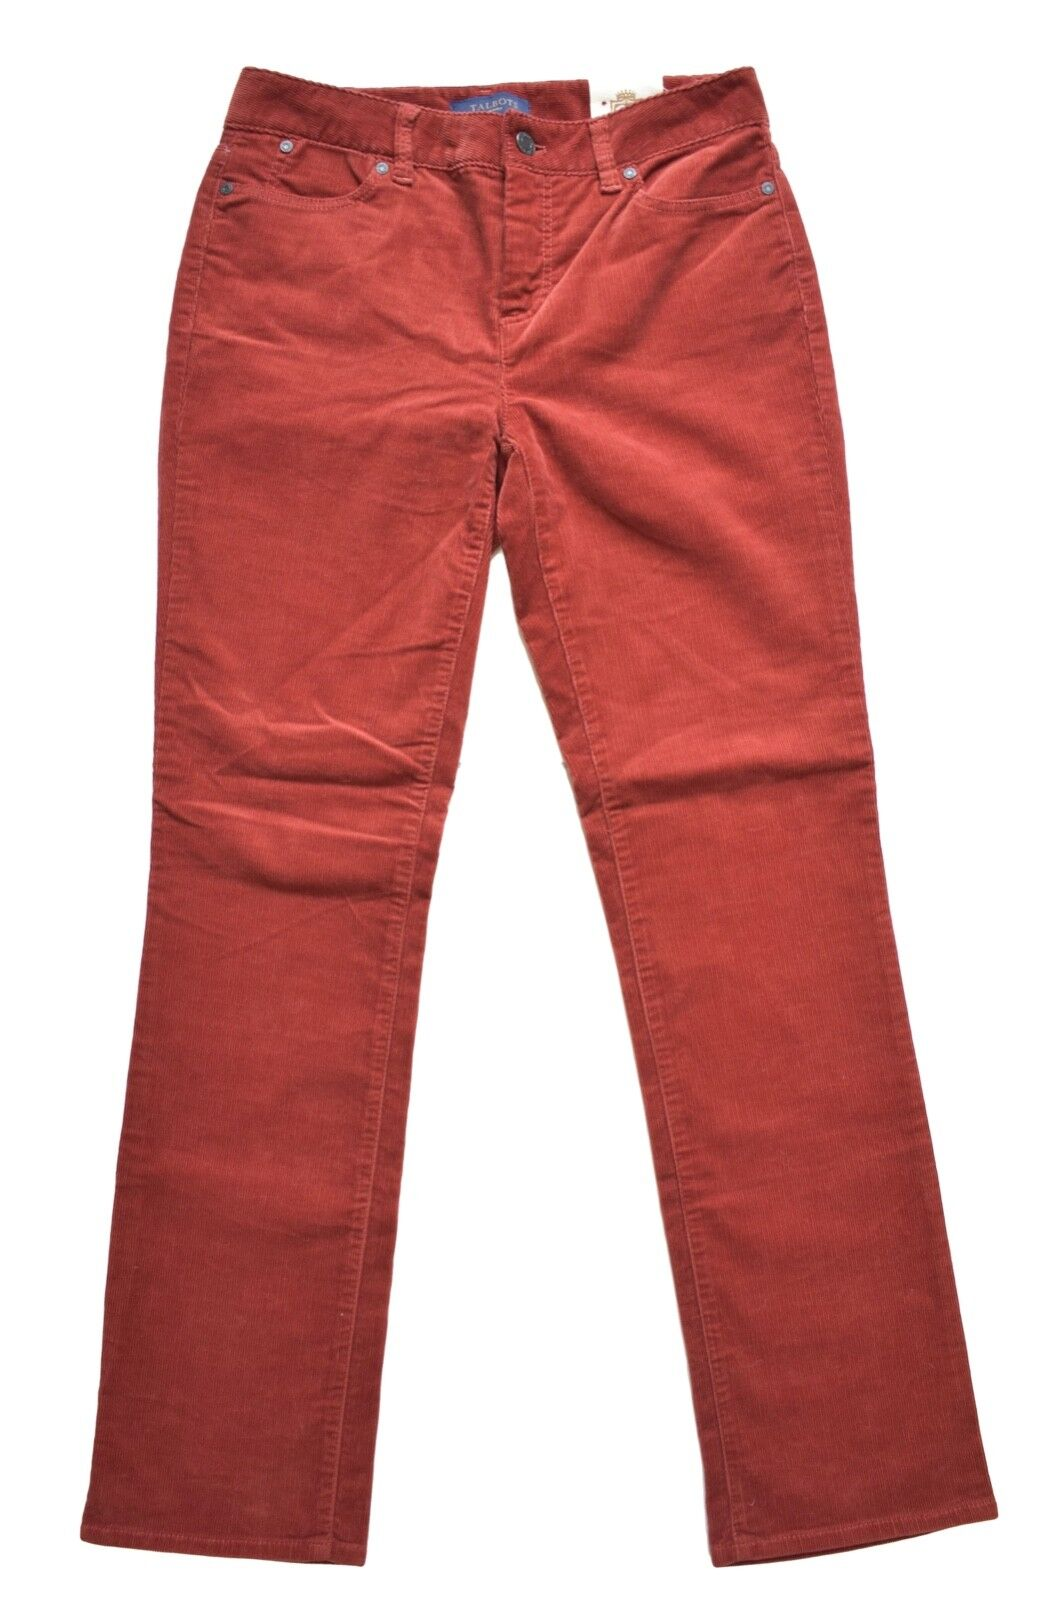 Talbots Womens Pants 4P Heritage Brown Red Rust Corduroy Straight Slimming NWT